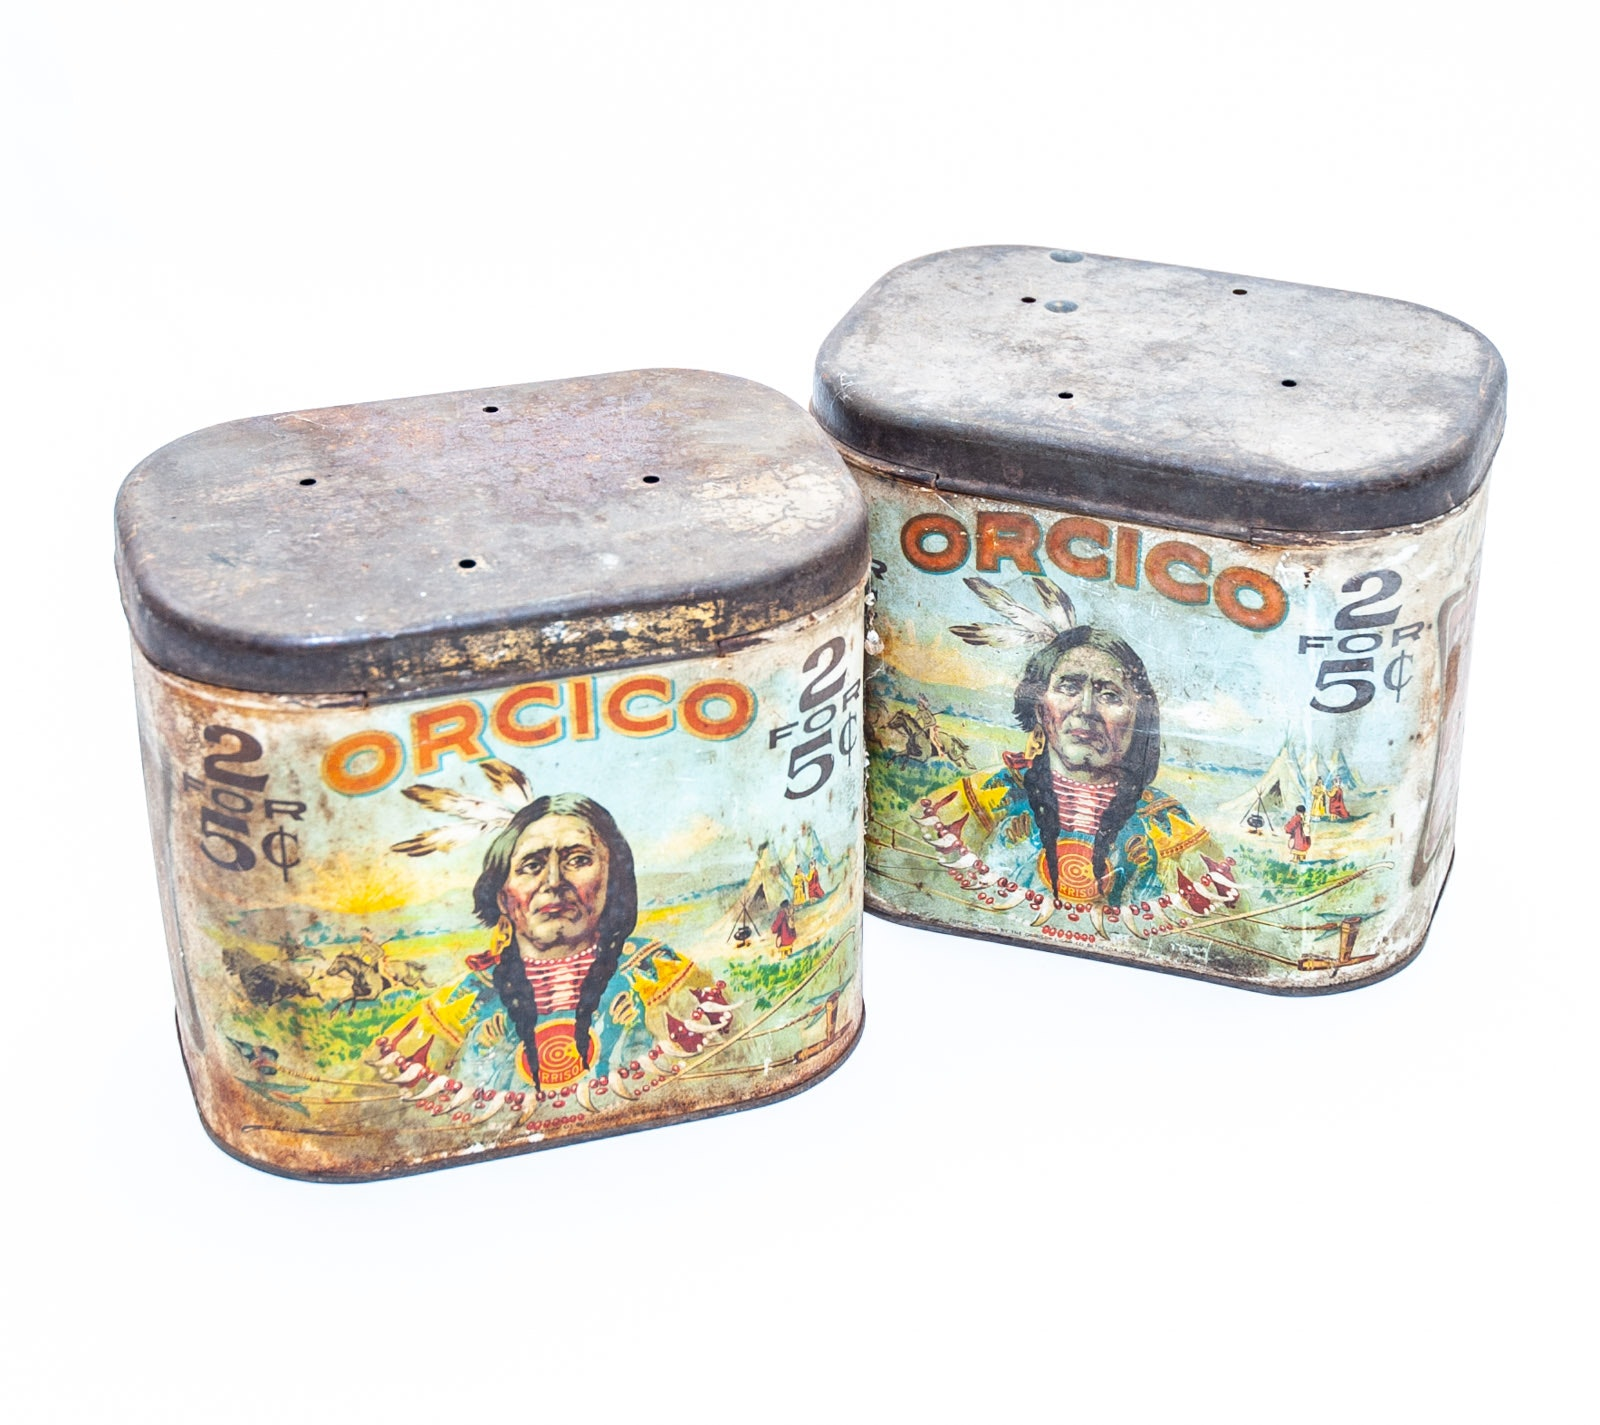 Antique Orcico Tobacco Tins